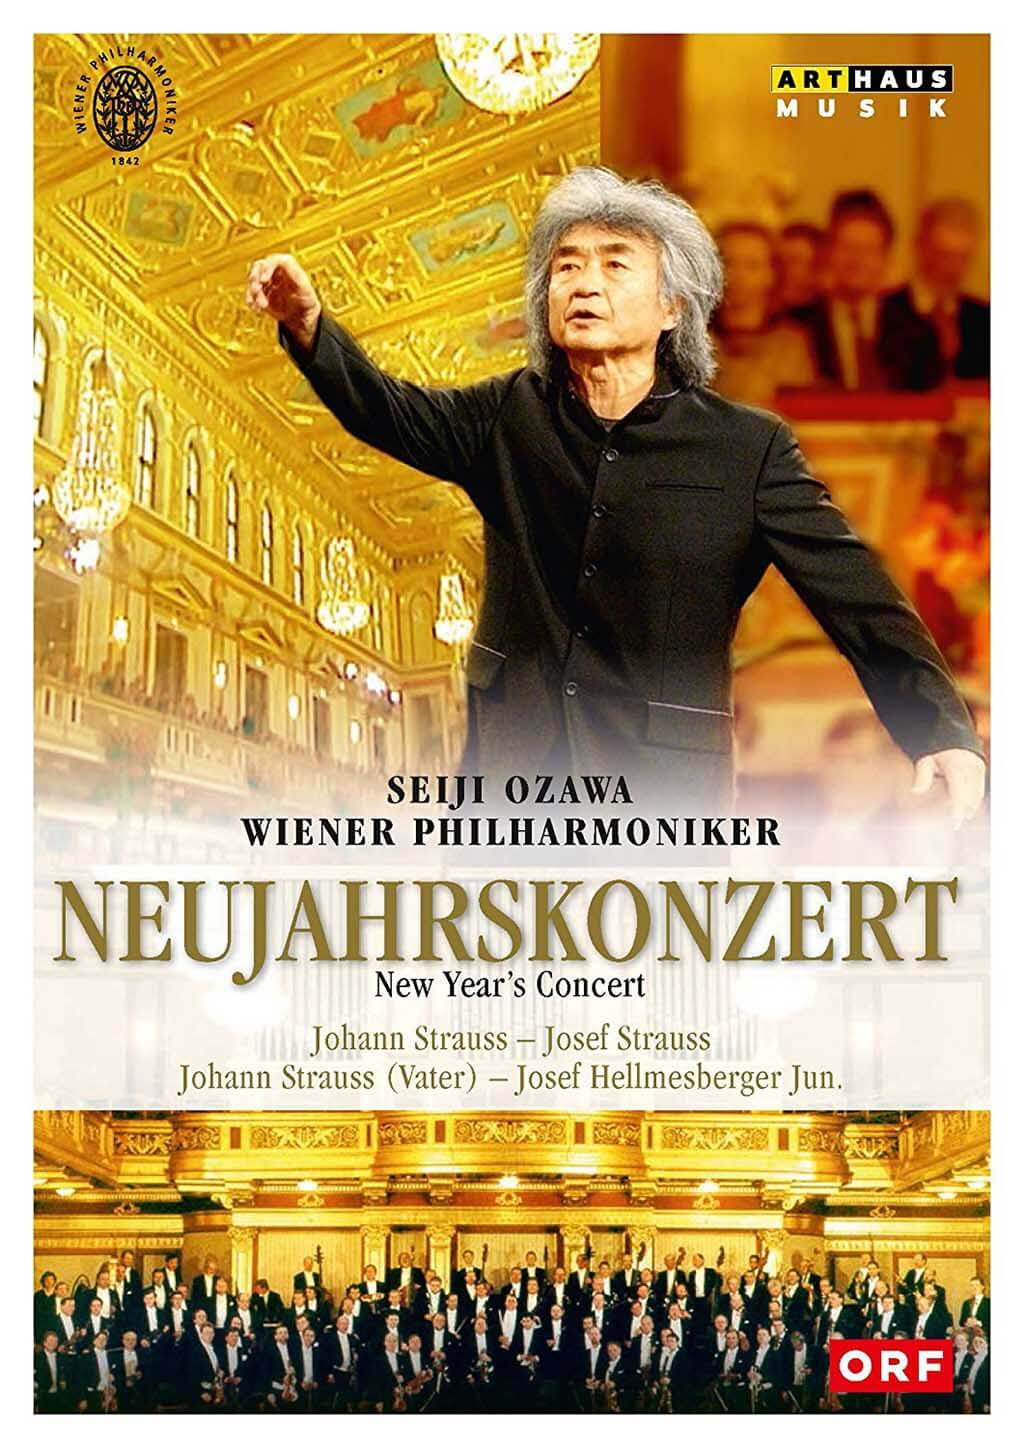 New Year's Concert 2002. Music by Johann Strauss, Josef Strauss and Josef Hellmesberger. Vienna Philharmonic Orchestra/Seiji Ozawa. Arthaus Musik DVD 109315. Total Time: 109:00 + 32:00 (special features).